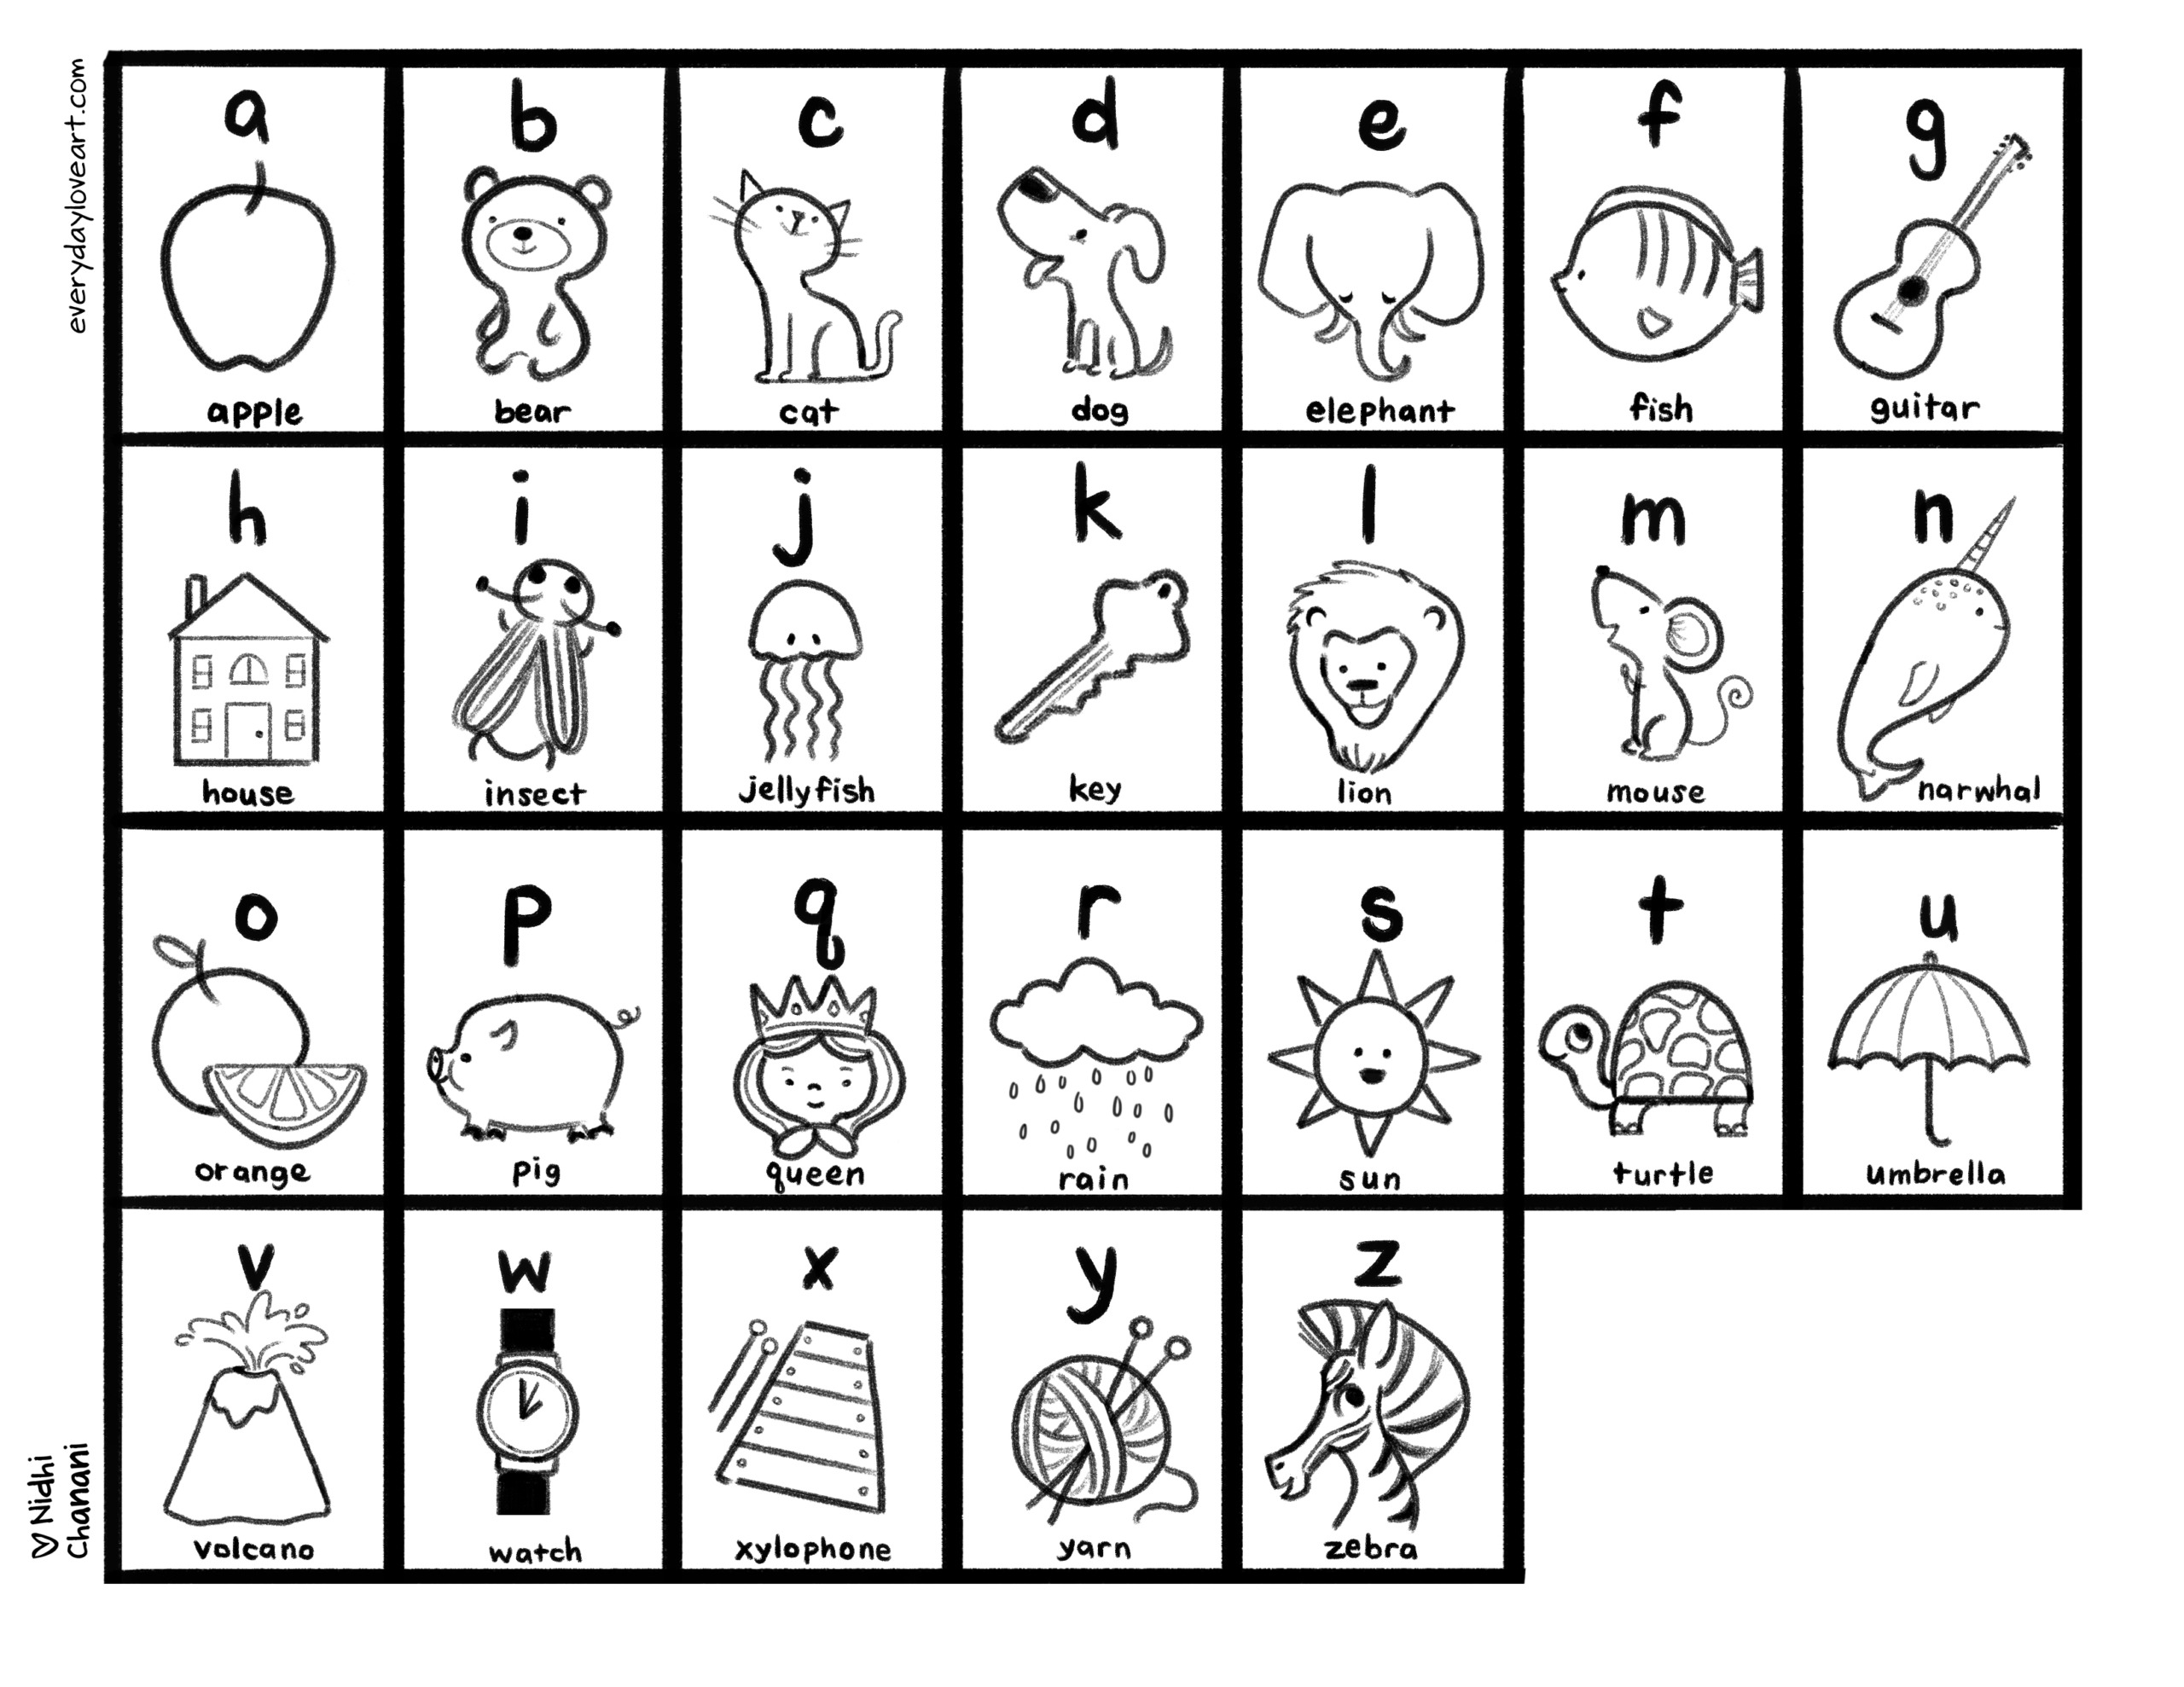 alphabet coloring sheet everyday art the of nidhi chanani alpha scaled painting set easel coloring pages Alphabet Coloring Page